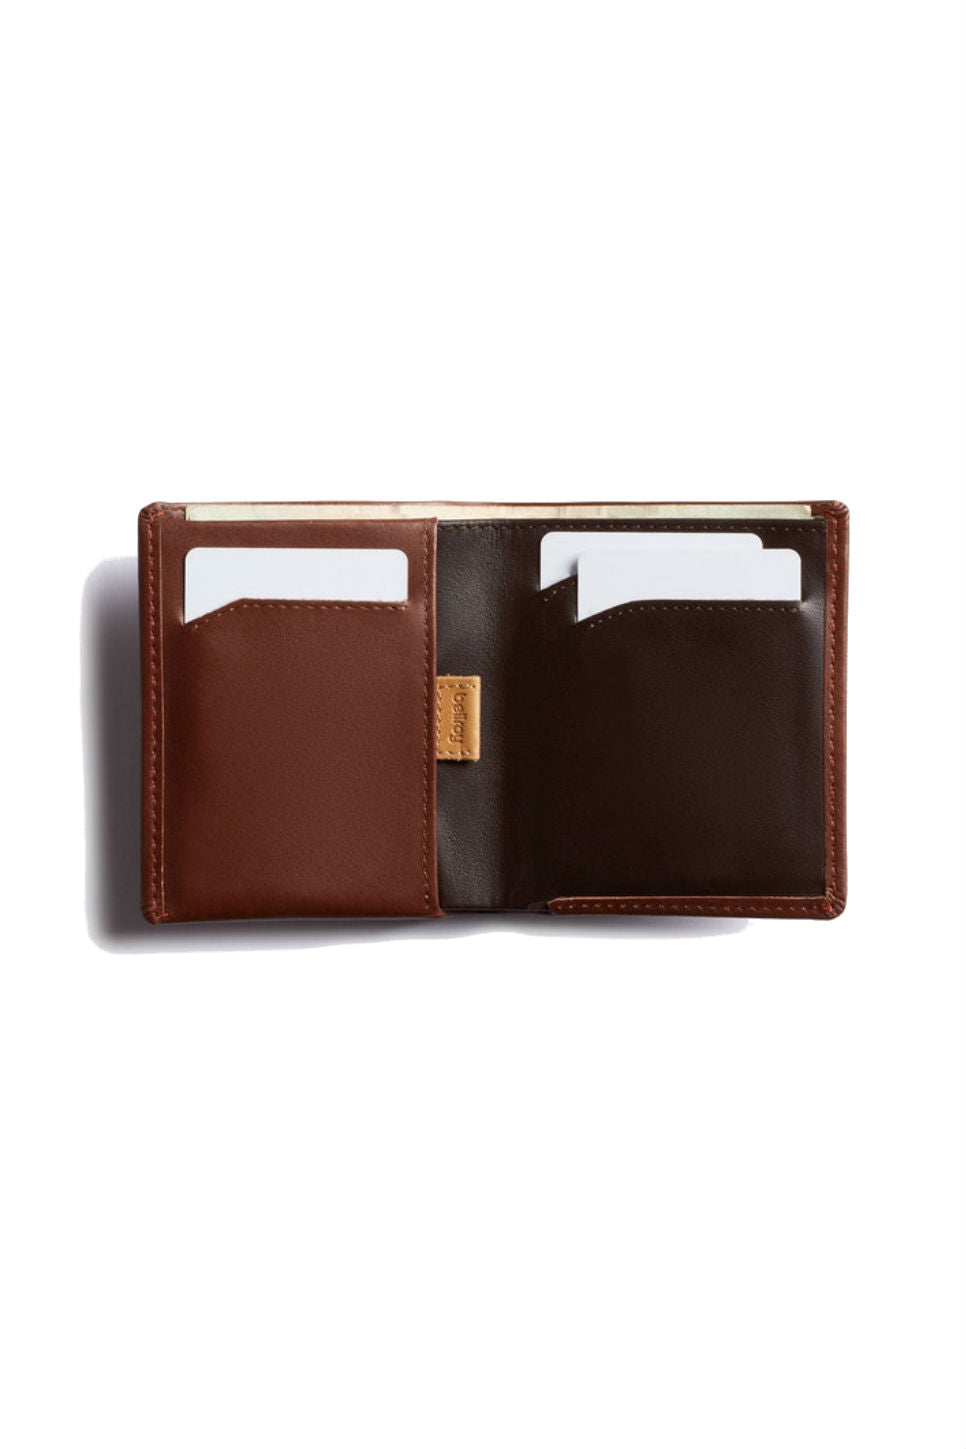 Bellroy - RFID Note Sleeve - Cocoa - Inside